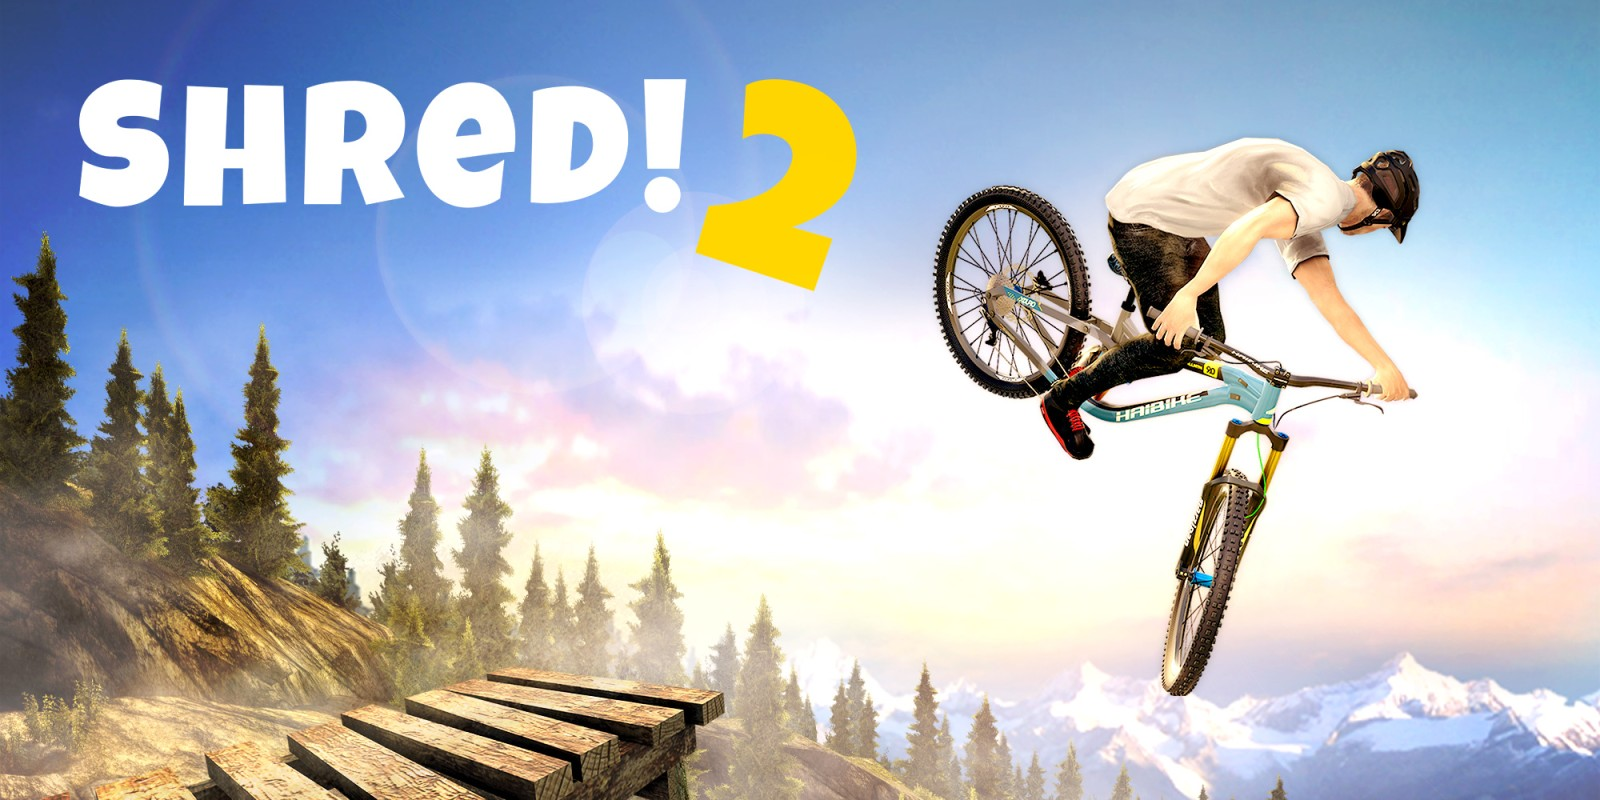 Shred! 2 - Freeride Mountainbiking